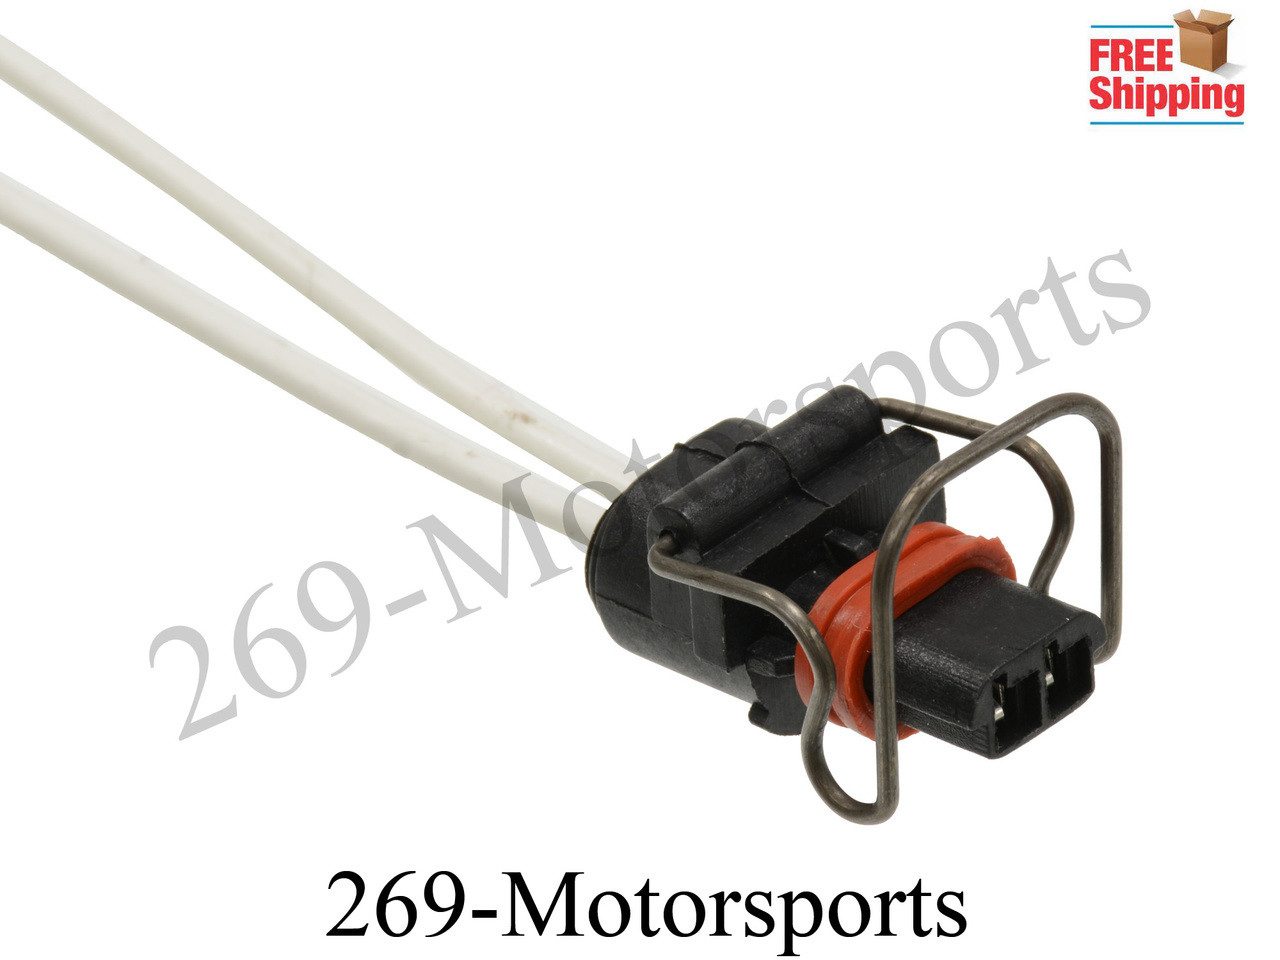 Motorcraft Wiring Connectors Pigtails Block And Schematic Diagrams Napa 7 Way Trailer Plug Diagram 2 Wire Injector Connector Ipr Valve Pigtail For 6 0 3 Ford Rh 269motorsports Com Delphi